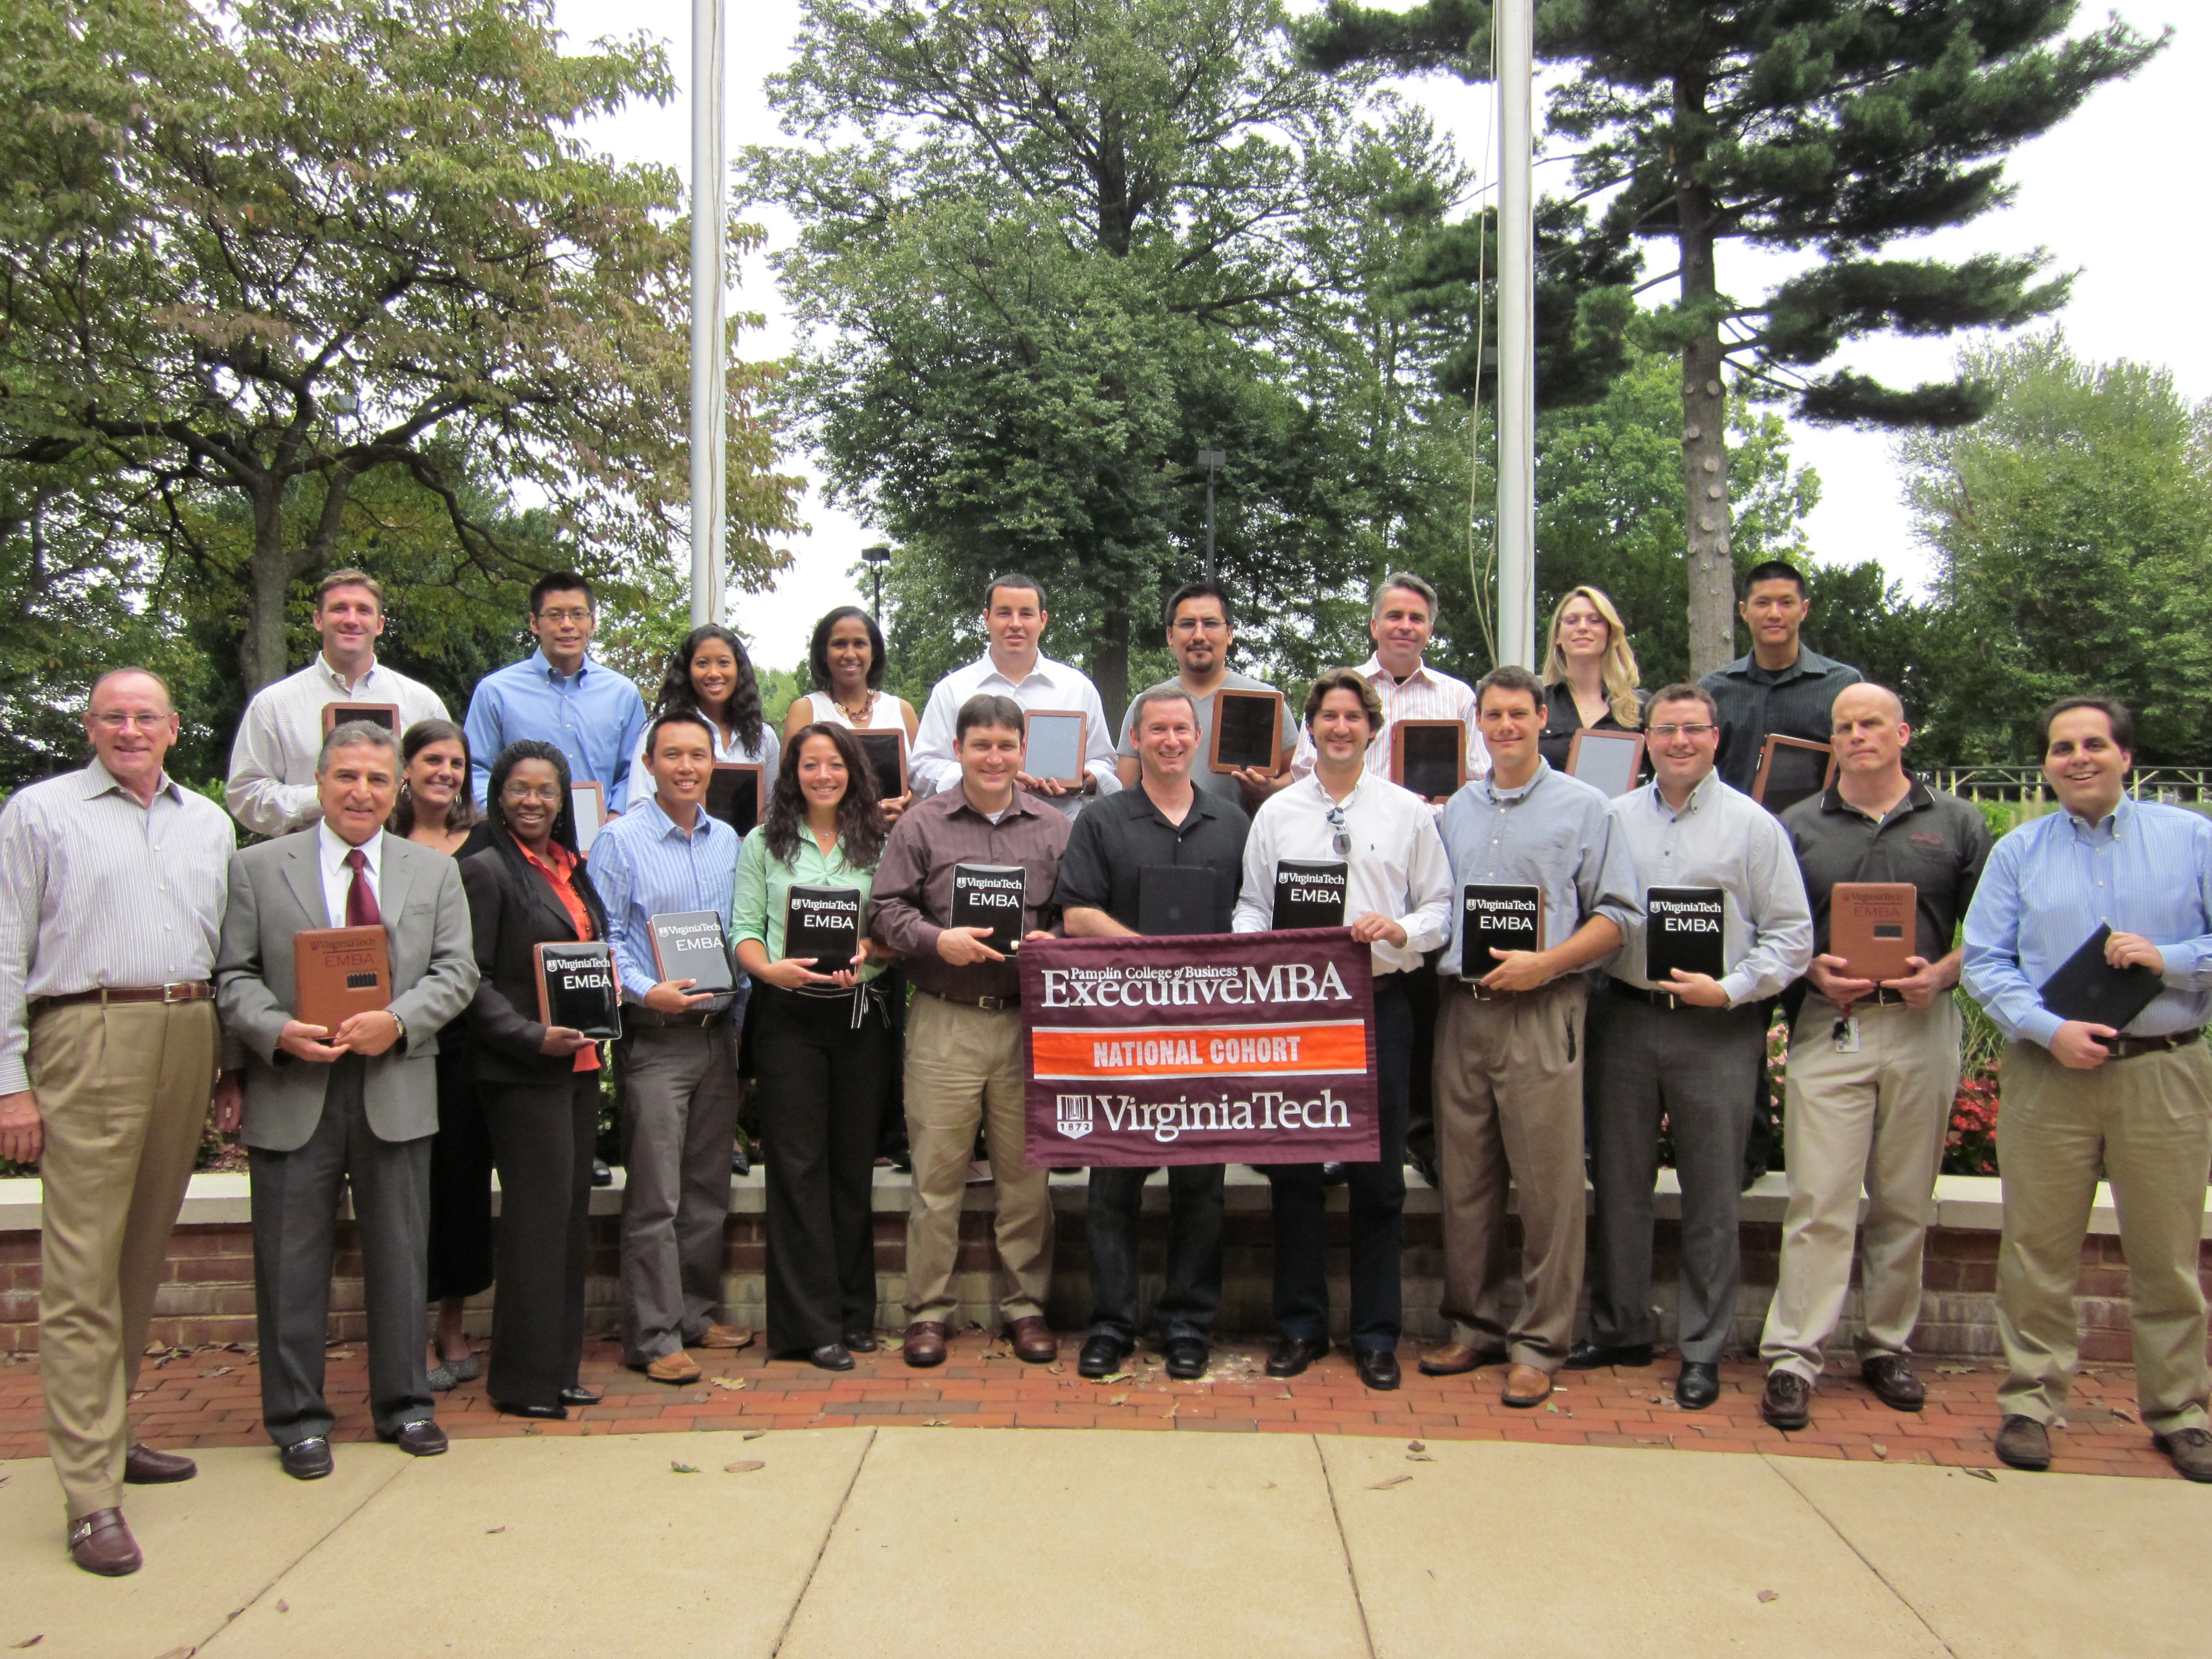 Executive MBA National Cohort with their iPads